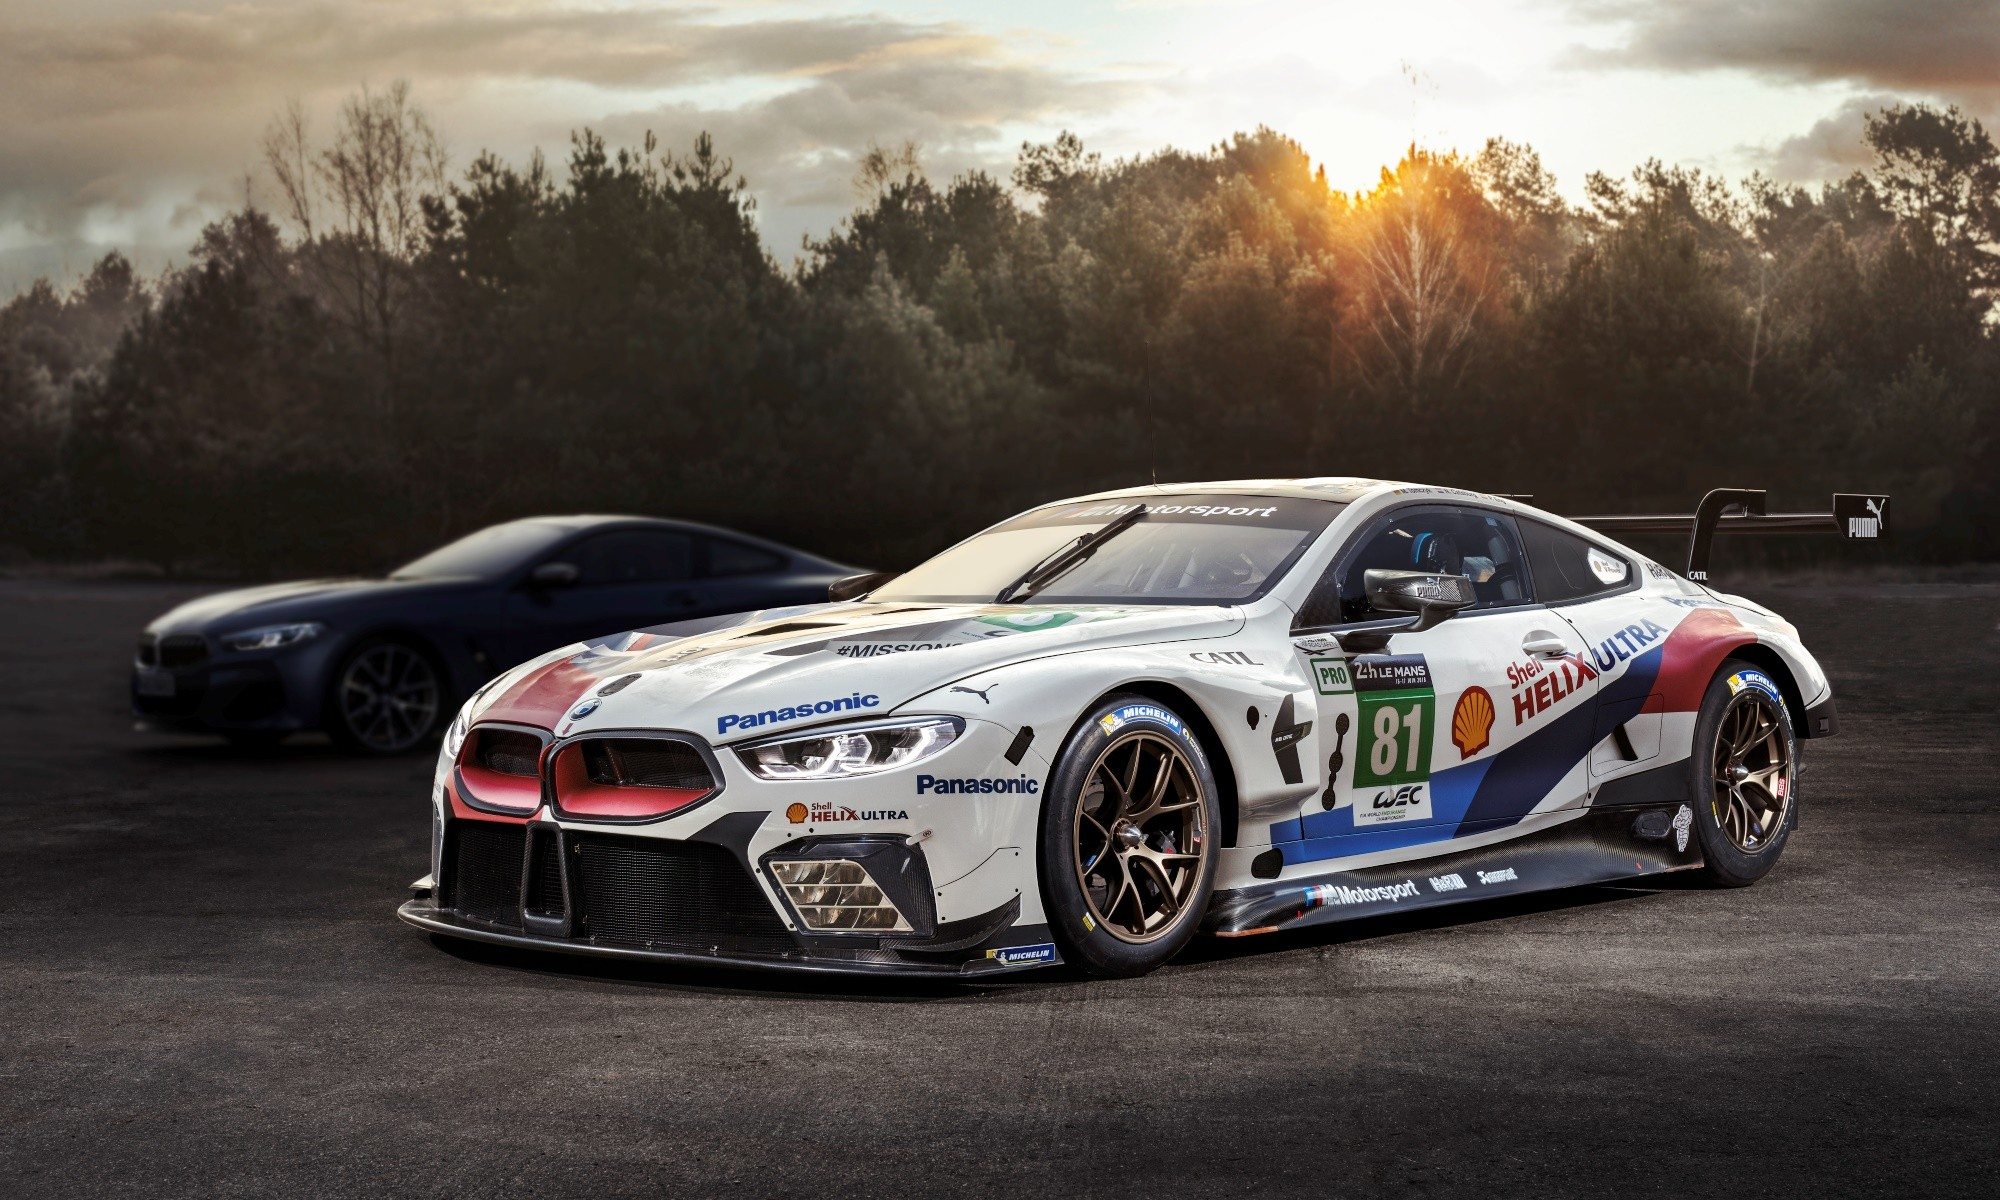 BMW returns to Le Mans